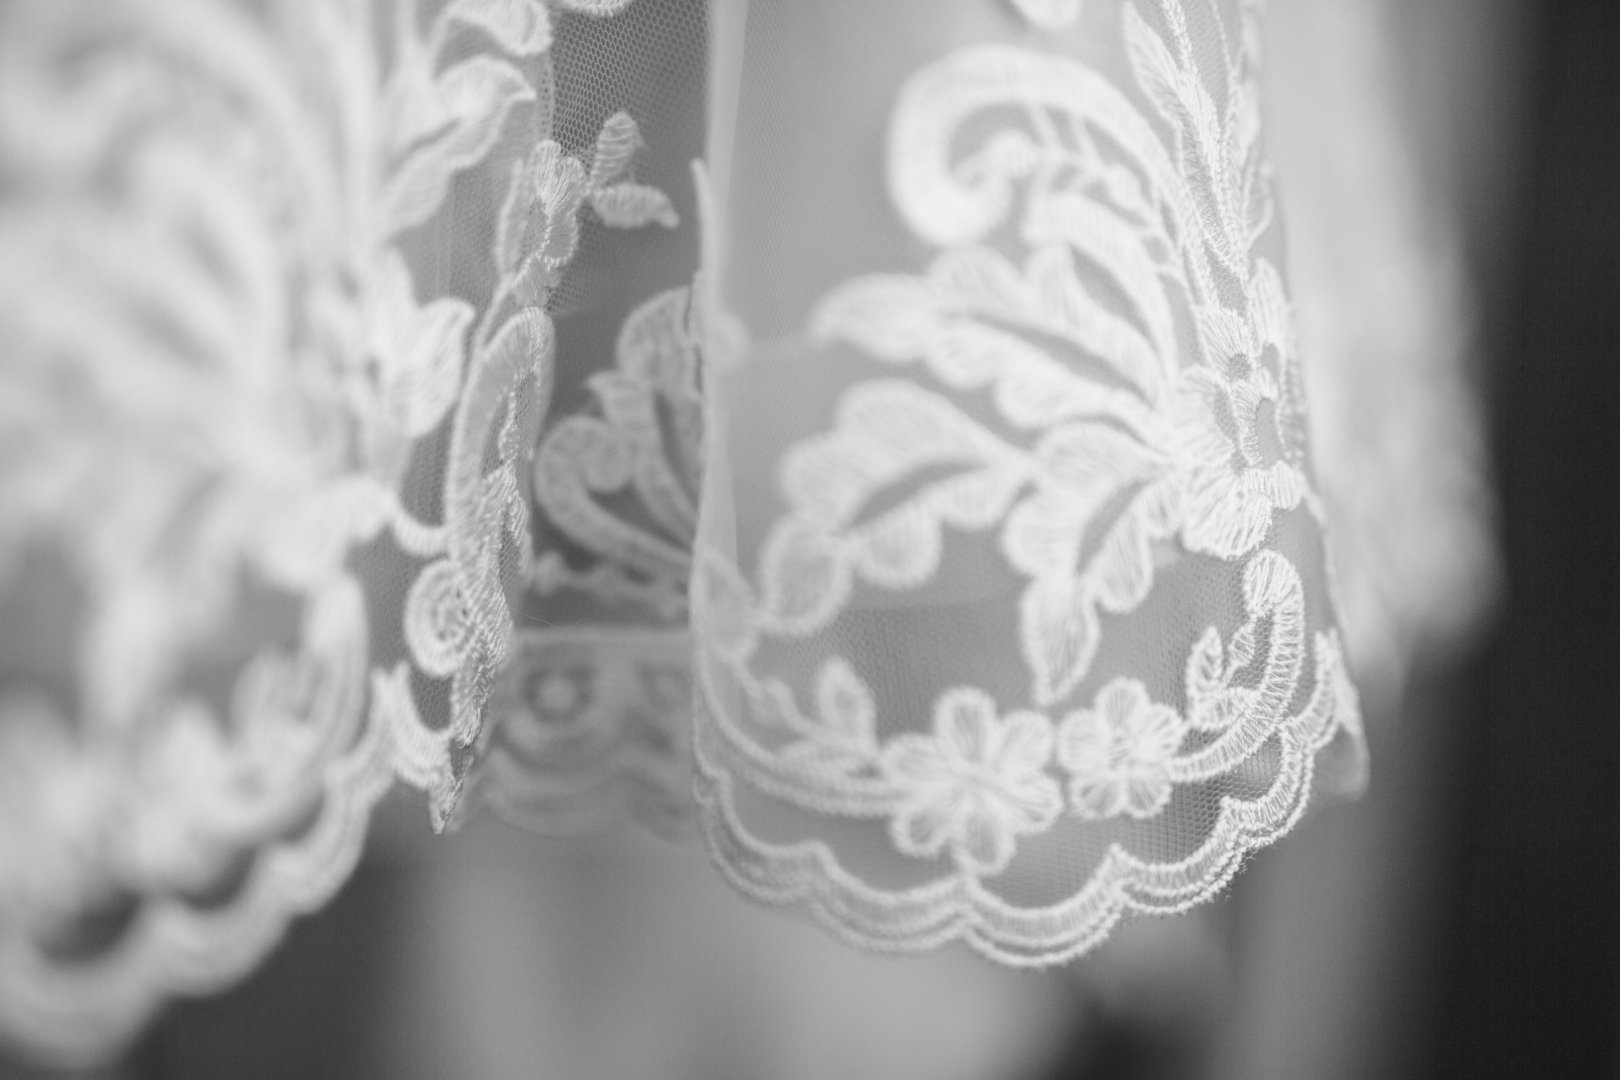 White Photograph Black-and-white Monochrome photography Monochrome Textile Dress Lace Lighting accessory Photography Lampshade Style Pattern Fashion accessory Still life photography Wildflower Wedding dress Doily Wedding